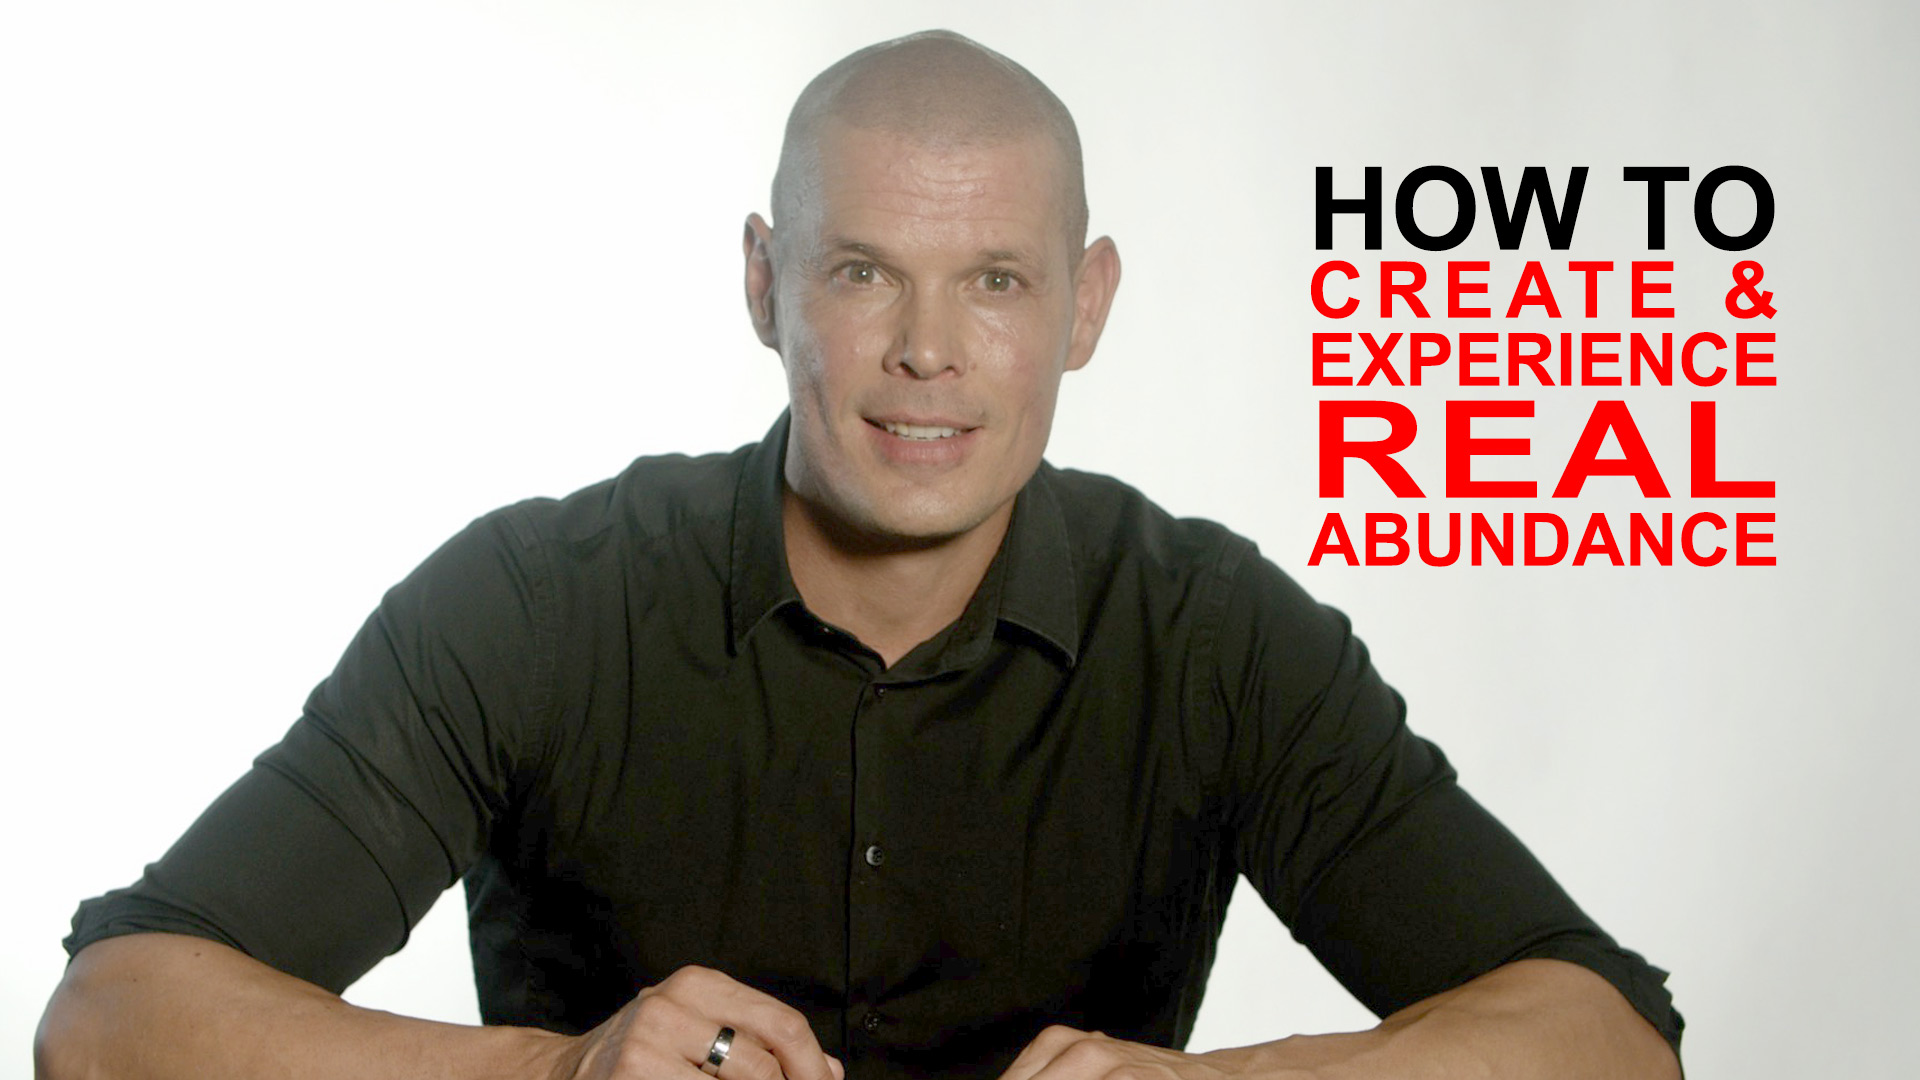 How to create real abundance (Not as a superficial mask of scarcity)